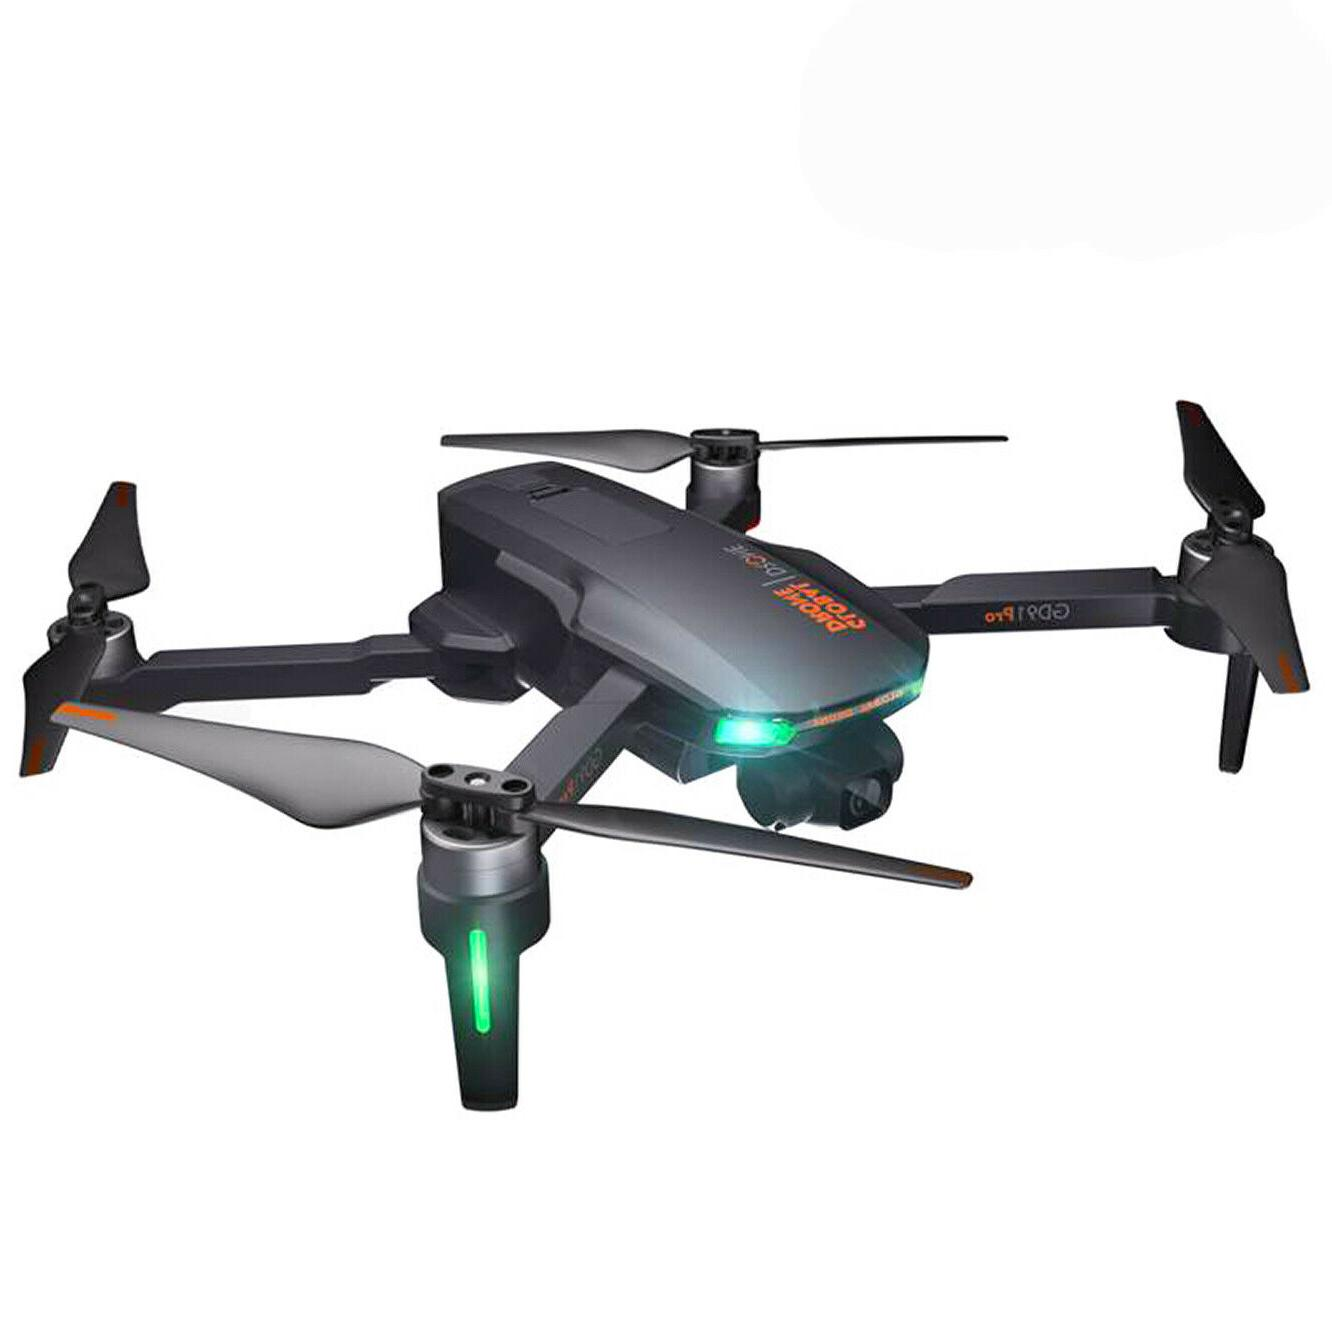 Drone 4K with gimbal drones stabilizer long range